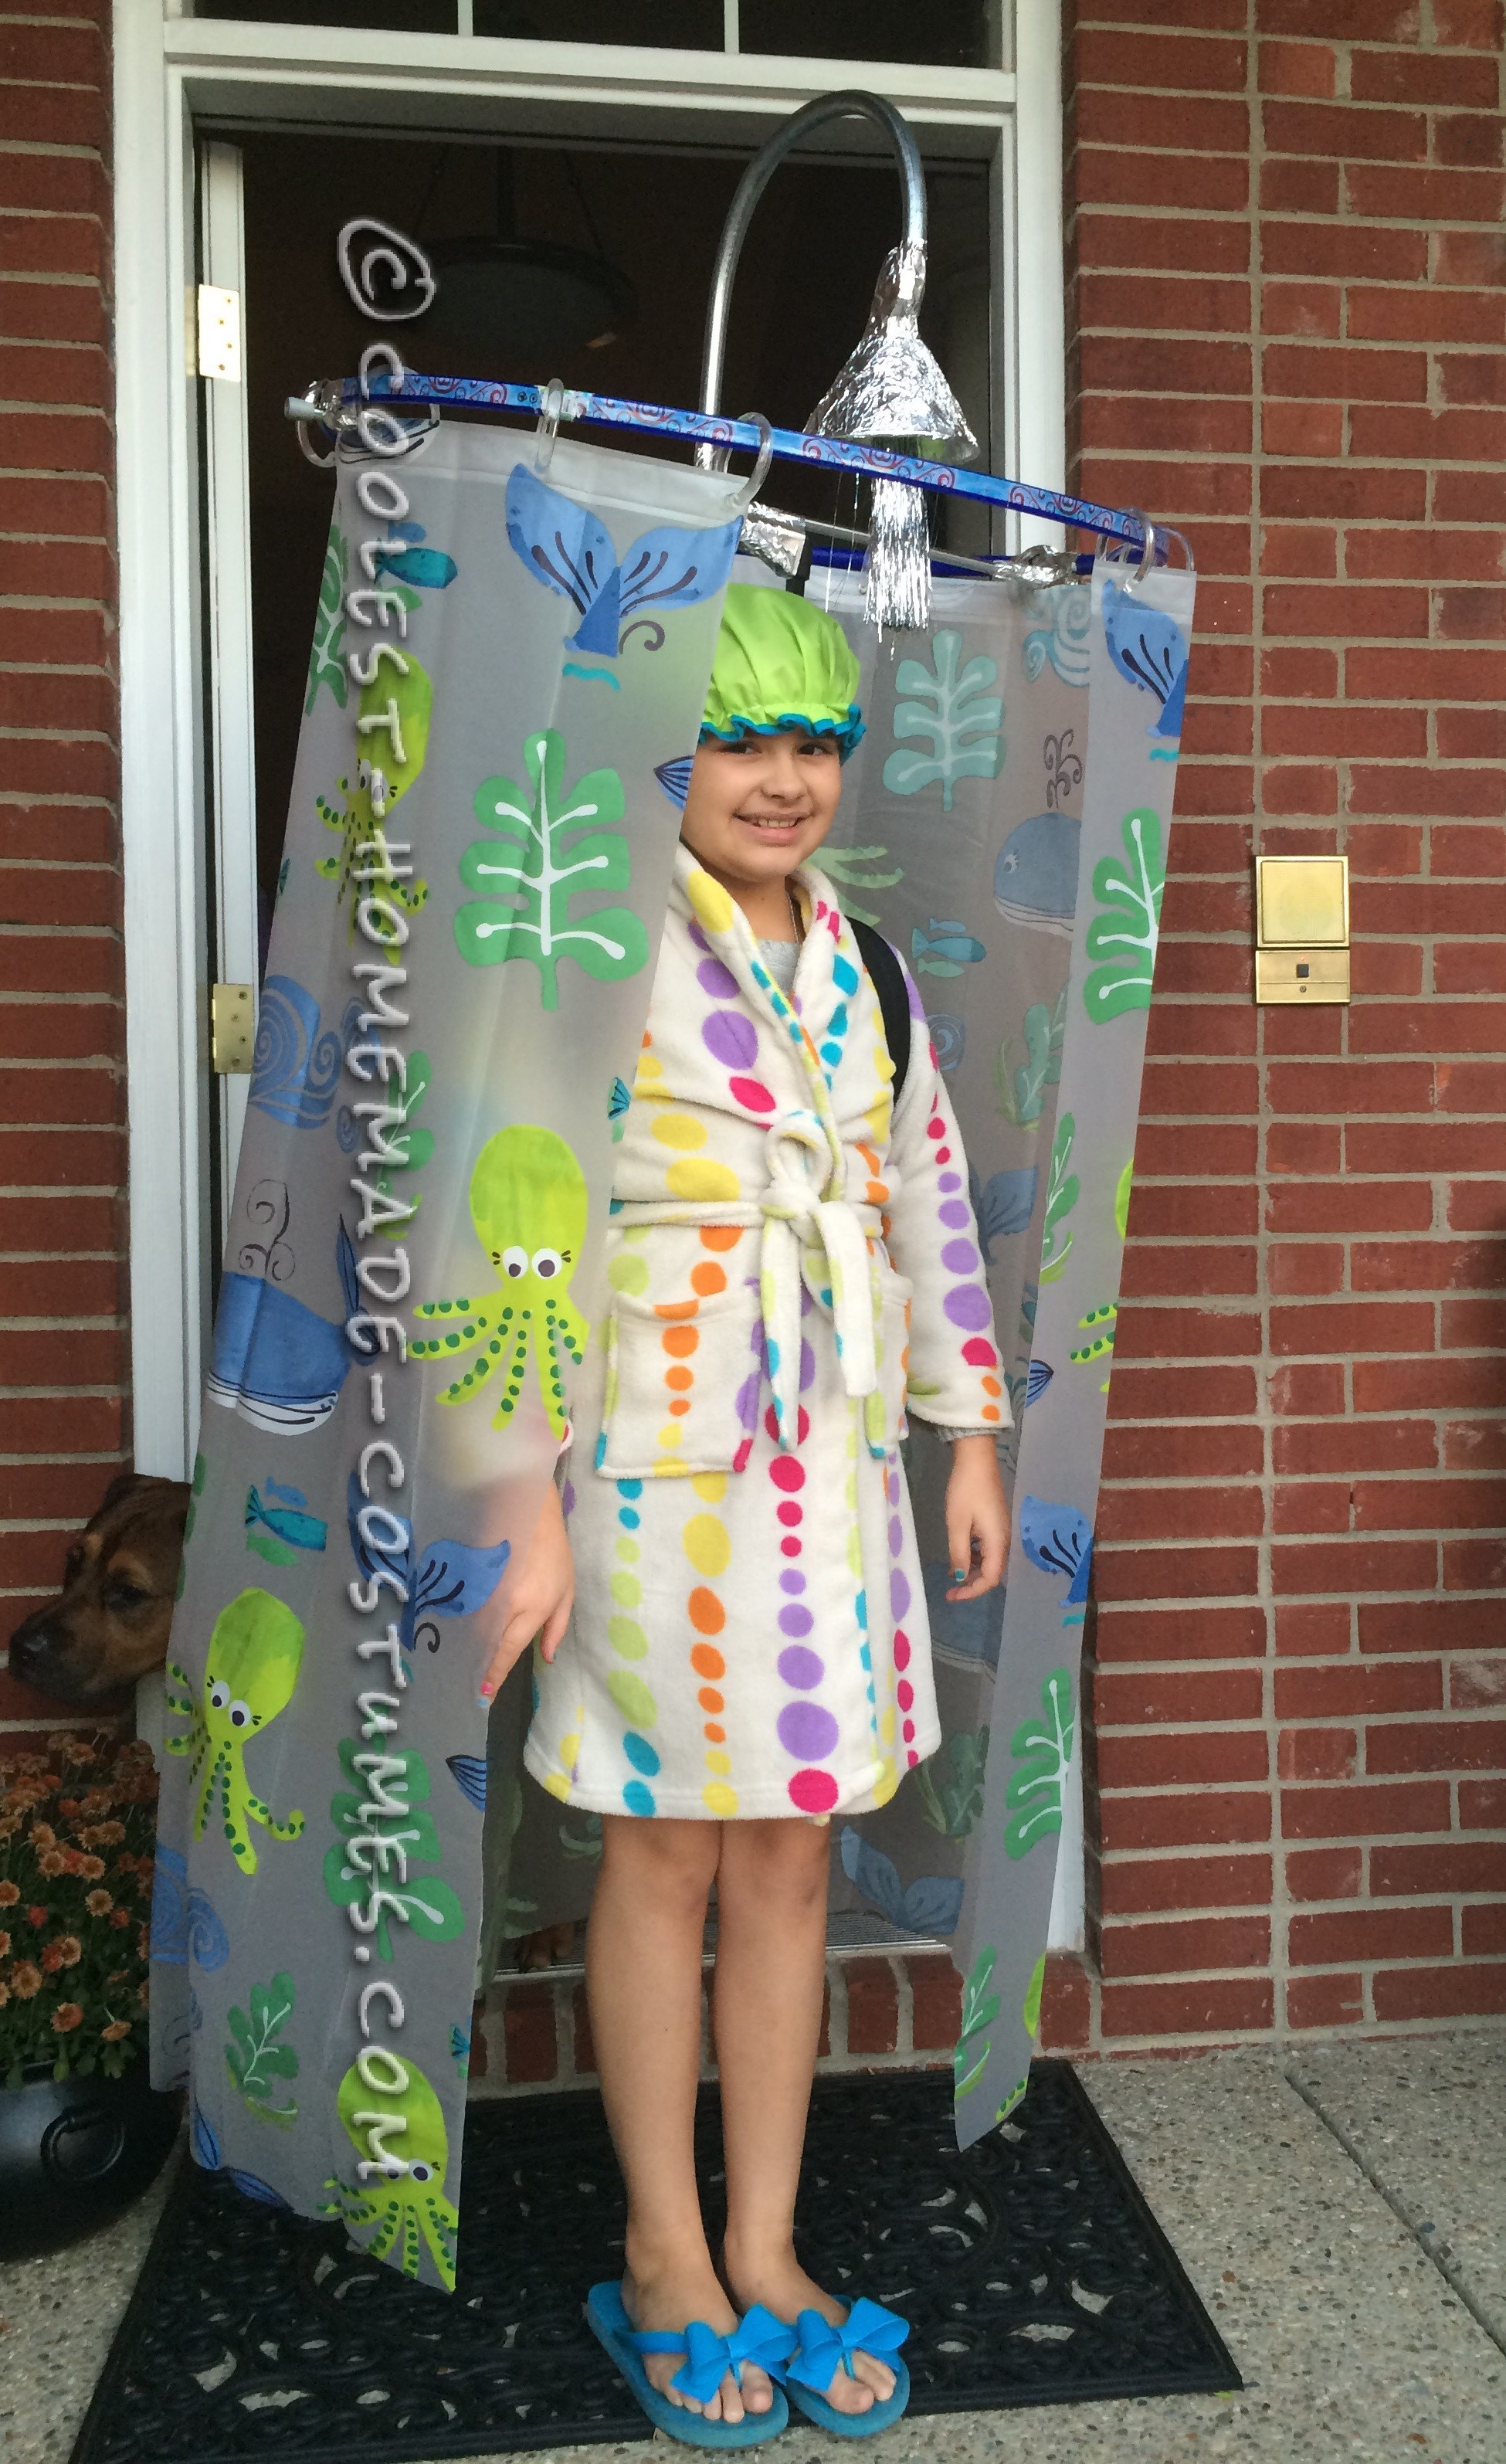 Cool DIY Costume Idea: Shower Curtain Costume